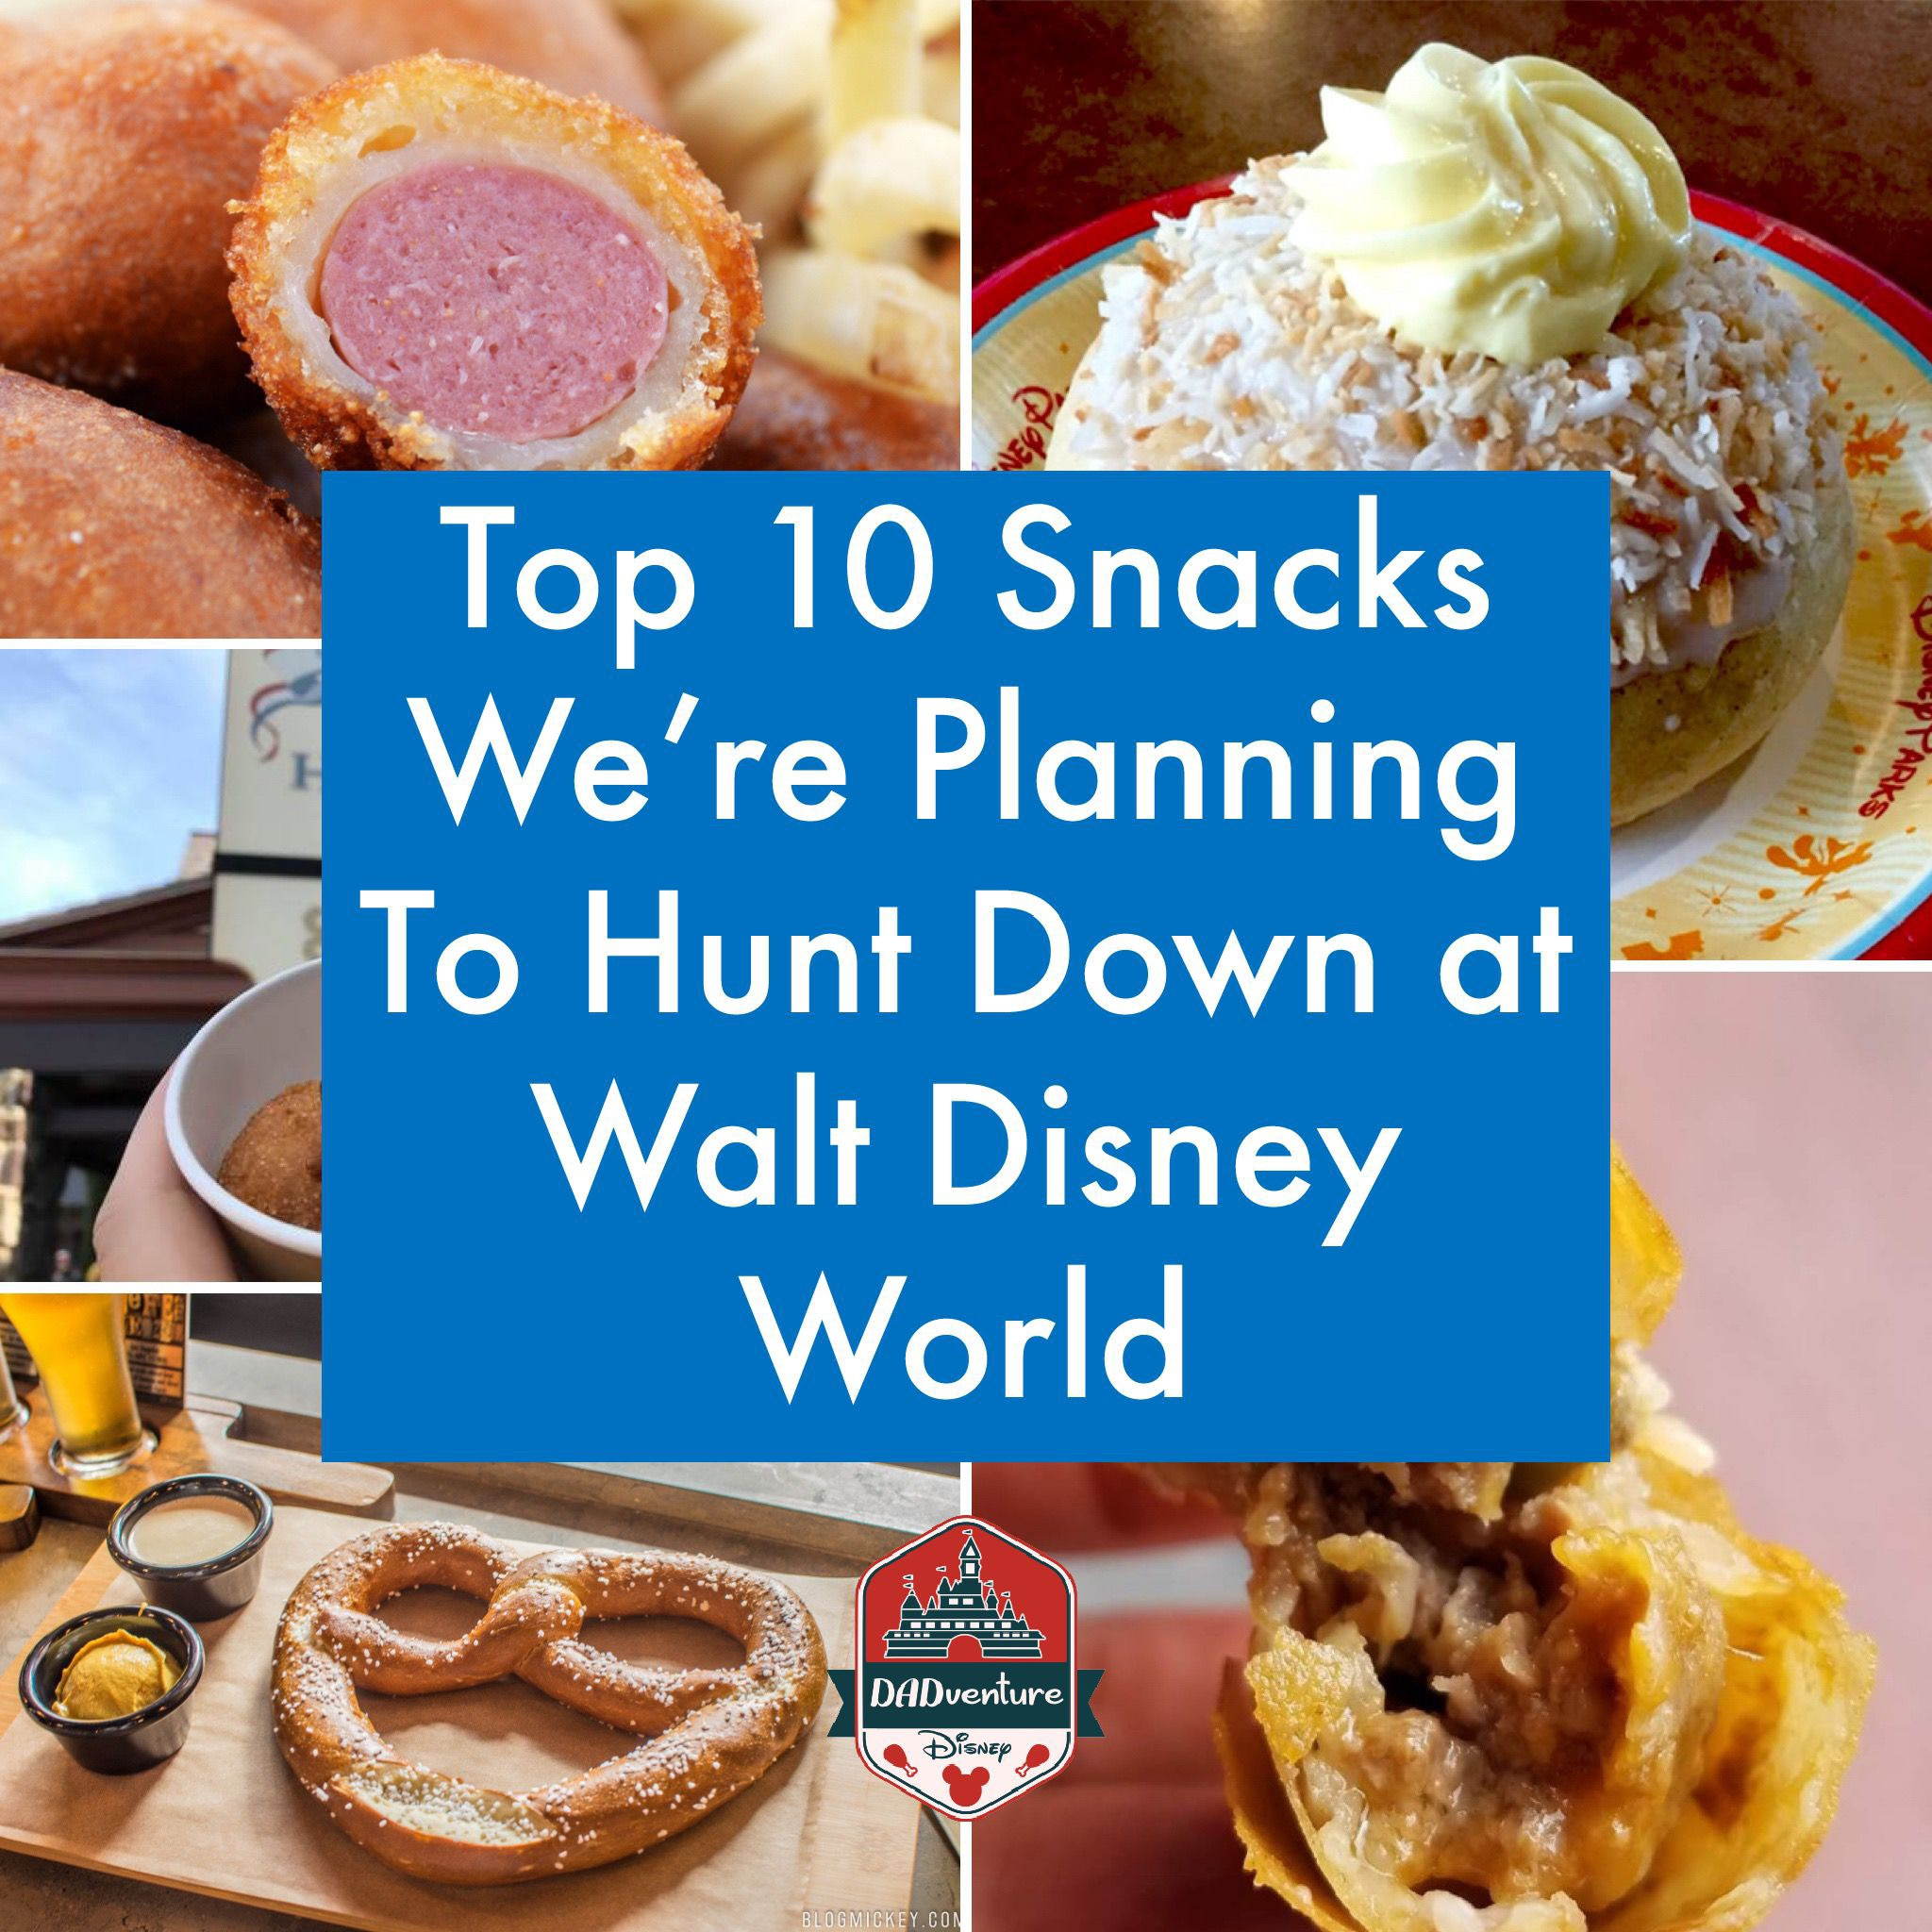 DADventure Disney – My Top 10 Favorite Snacks I'm Excited To Find at Walt Disney World